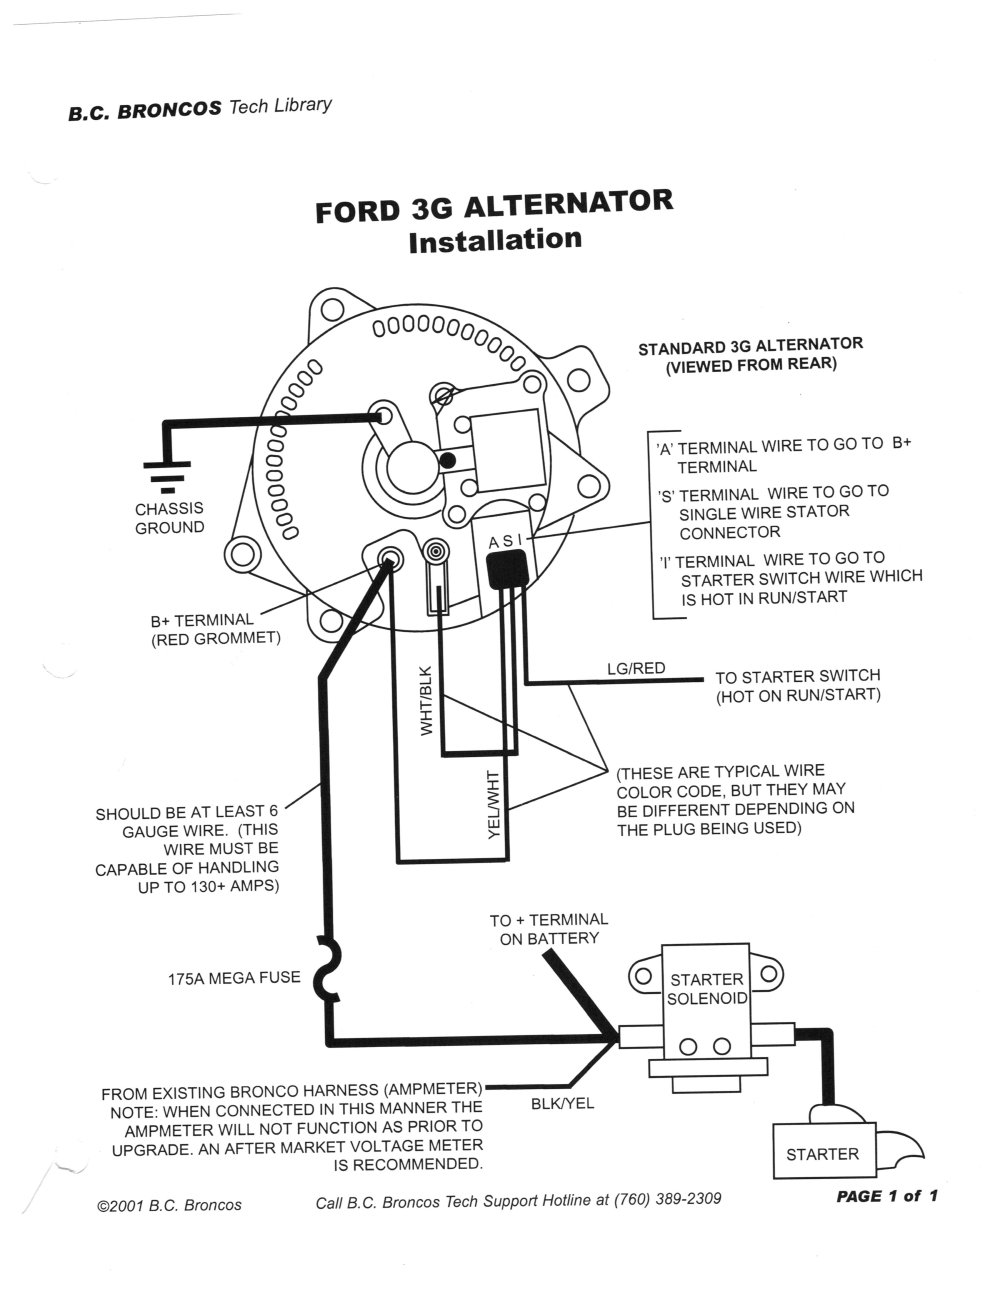 medium resolution of 1985 mustang alternator wiring diagram wiring diagrams favorites1983 ford mustang alternator wiring diagram free picture wiring